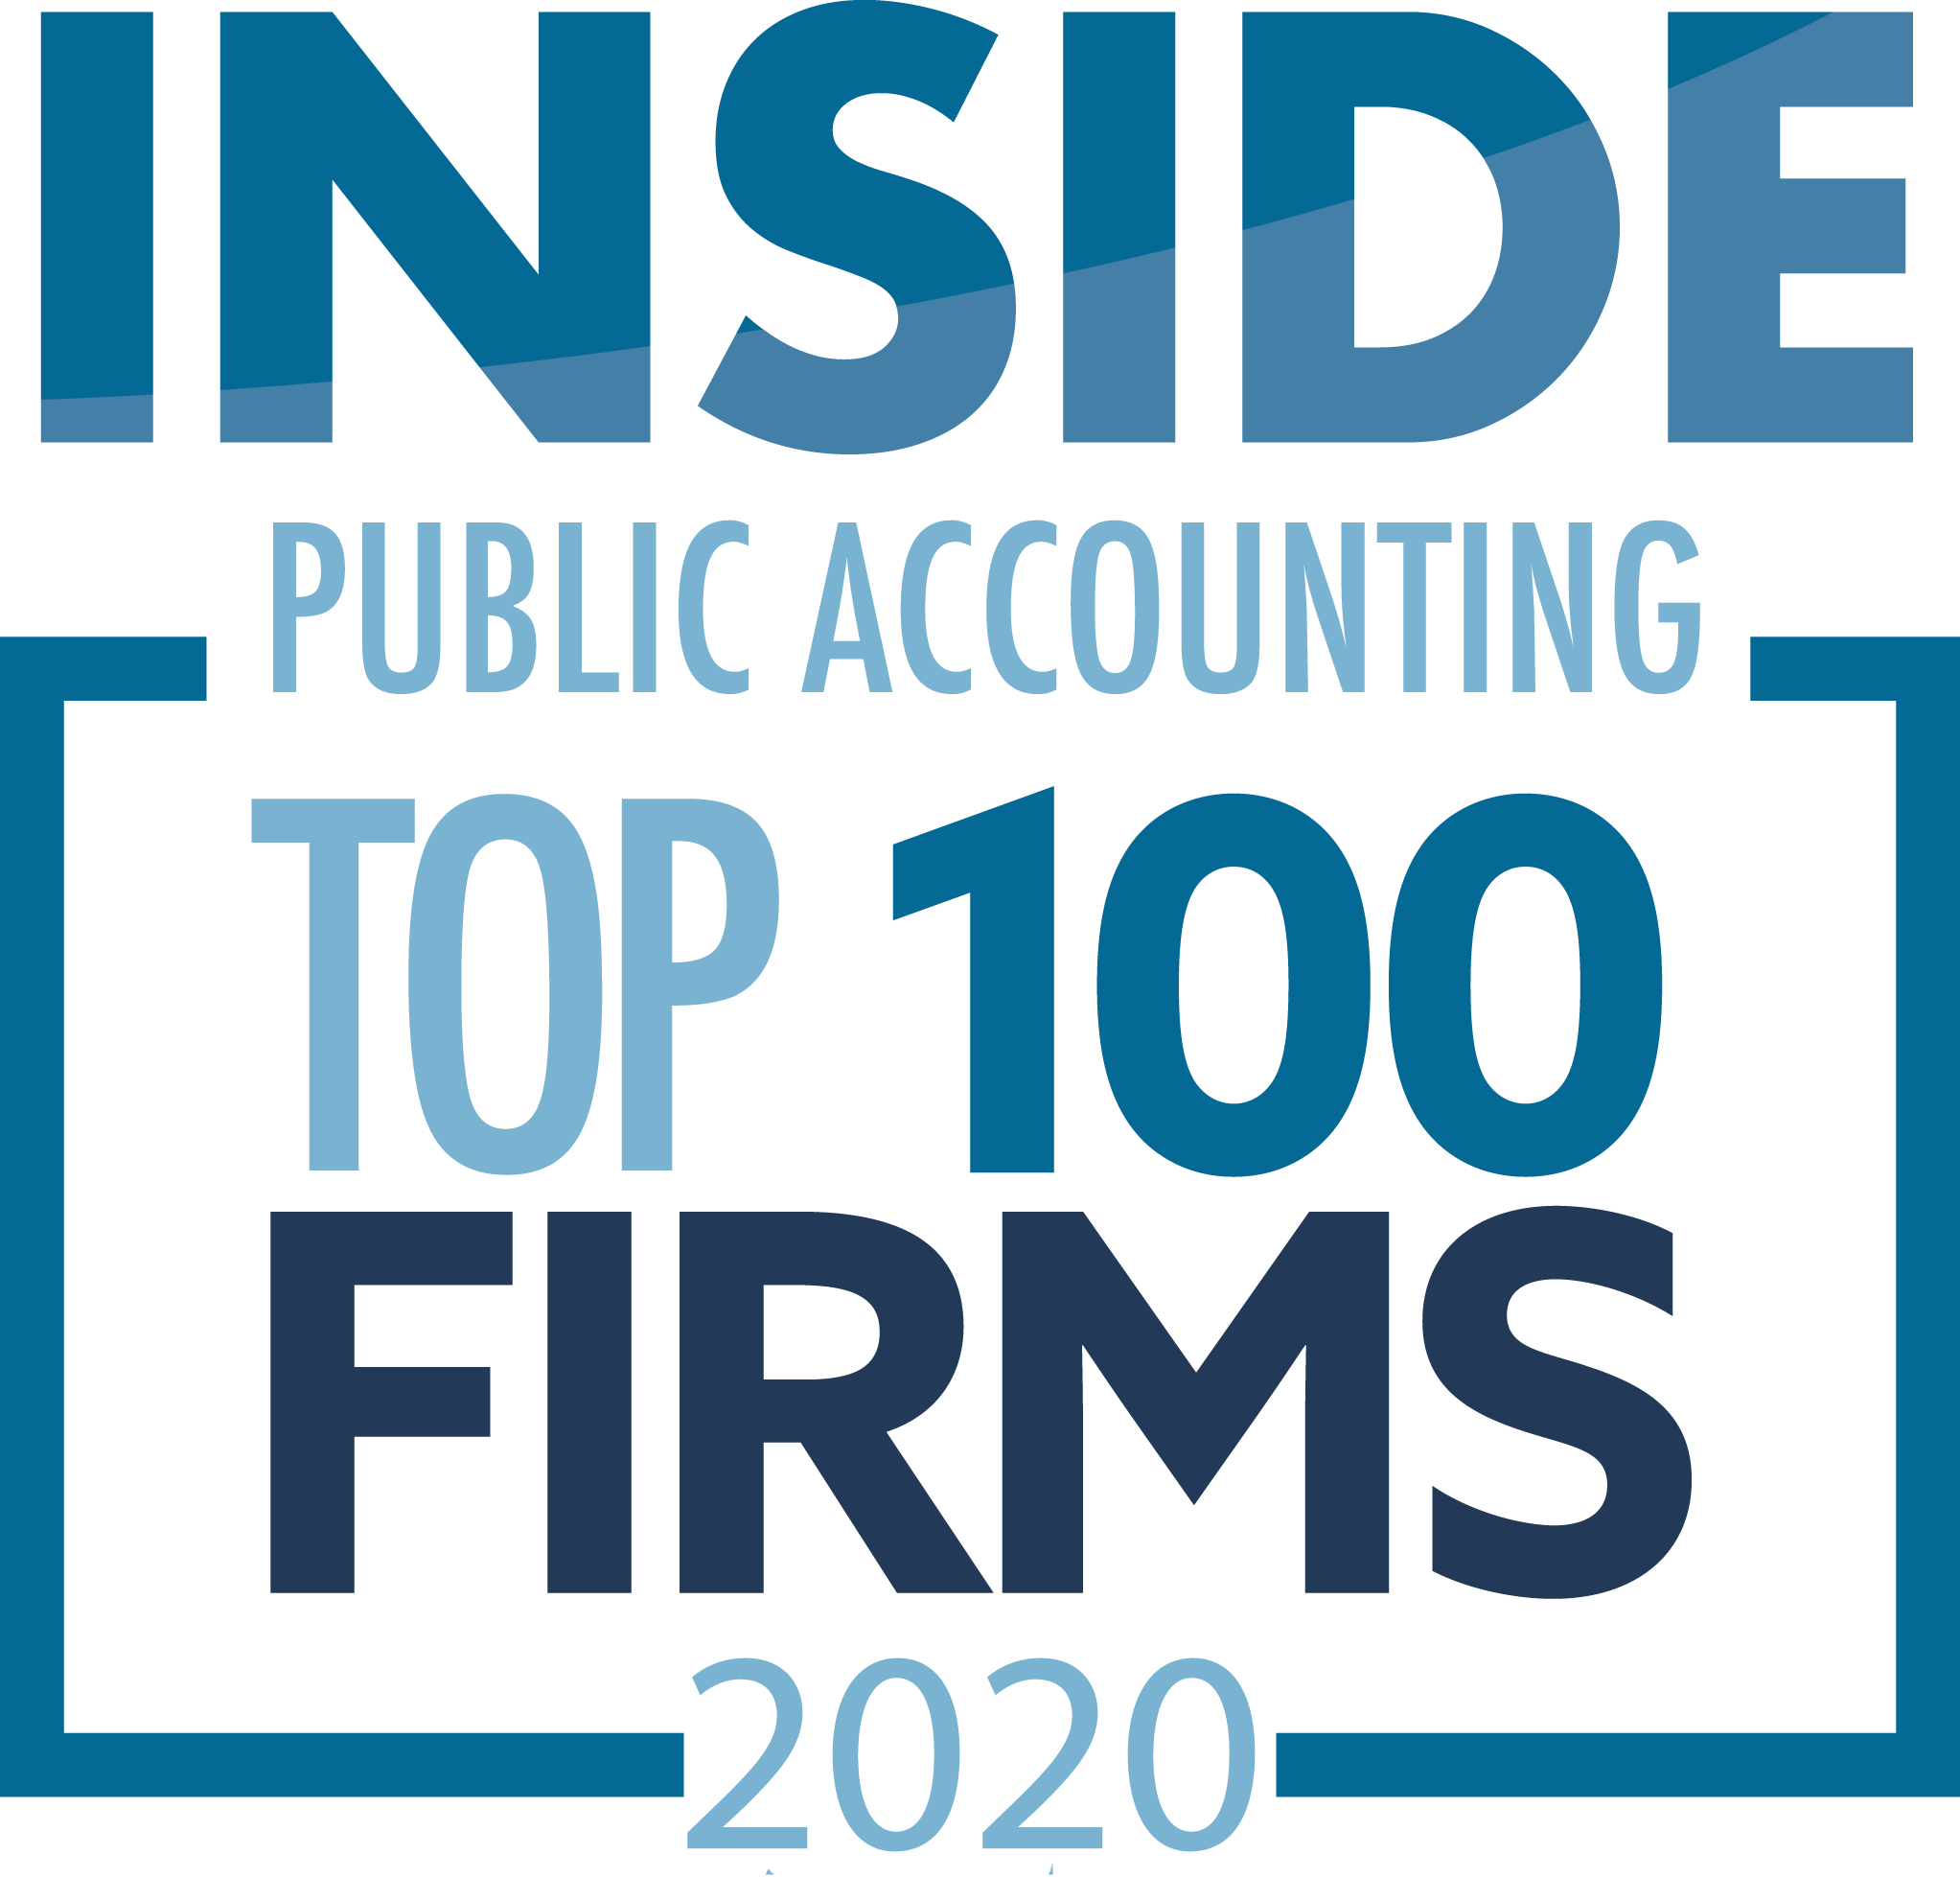 inside-public-accounting-top-100-firms-2020